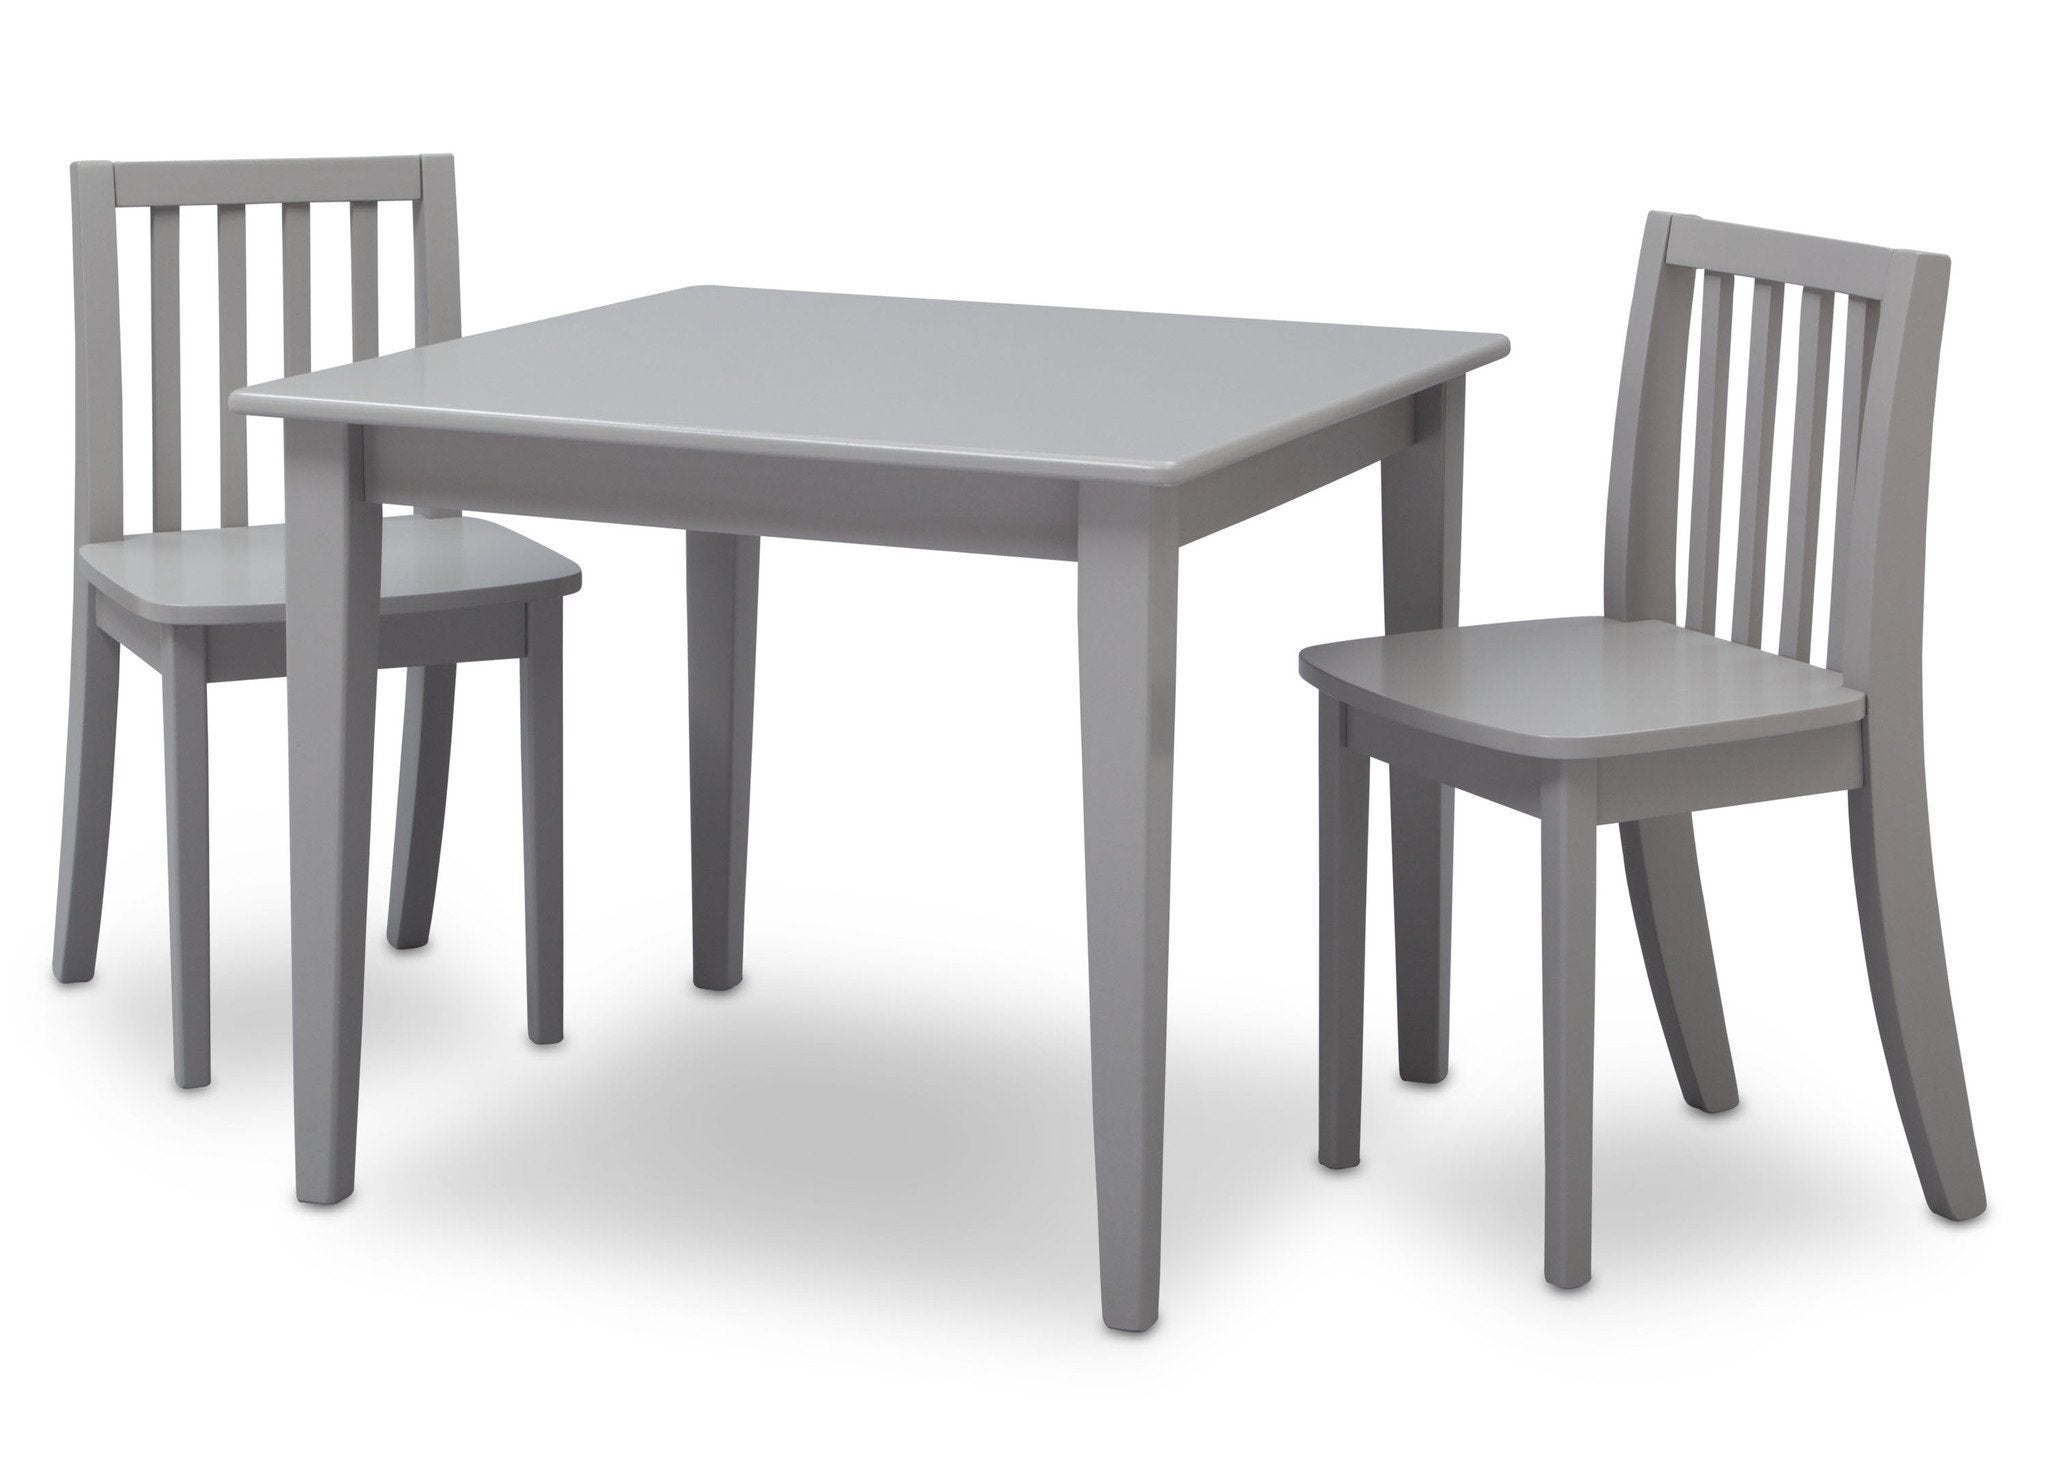 Delta Children Grey (026) Next Steps Table and Chairs a2a